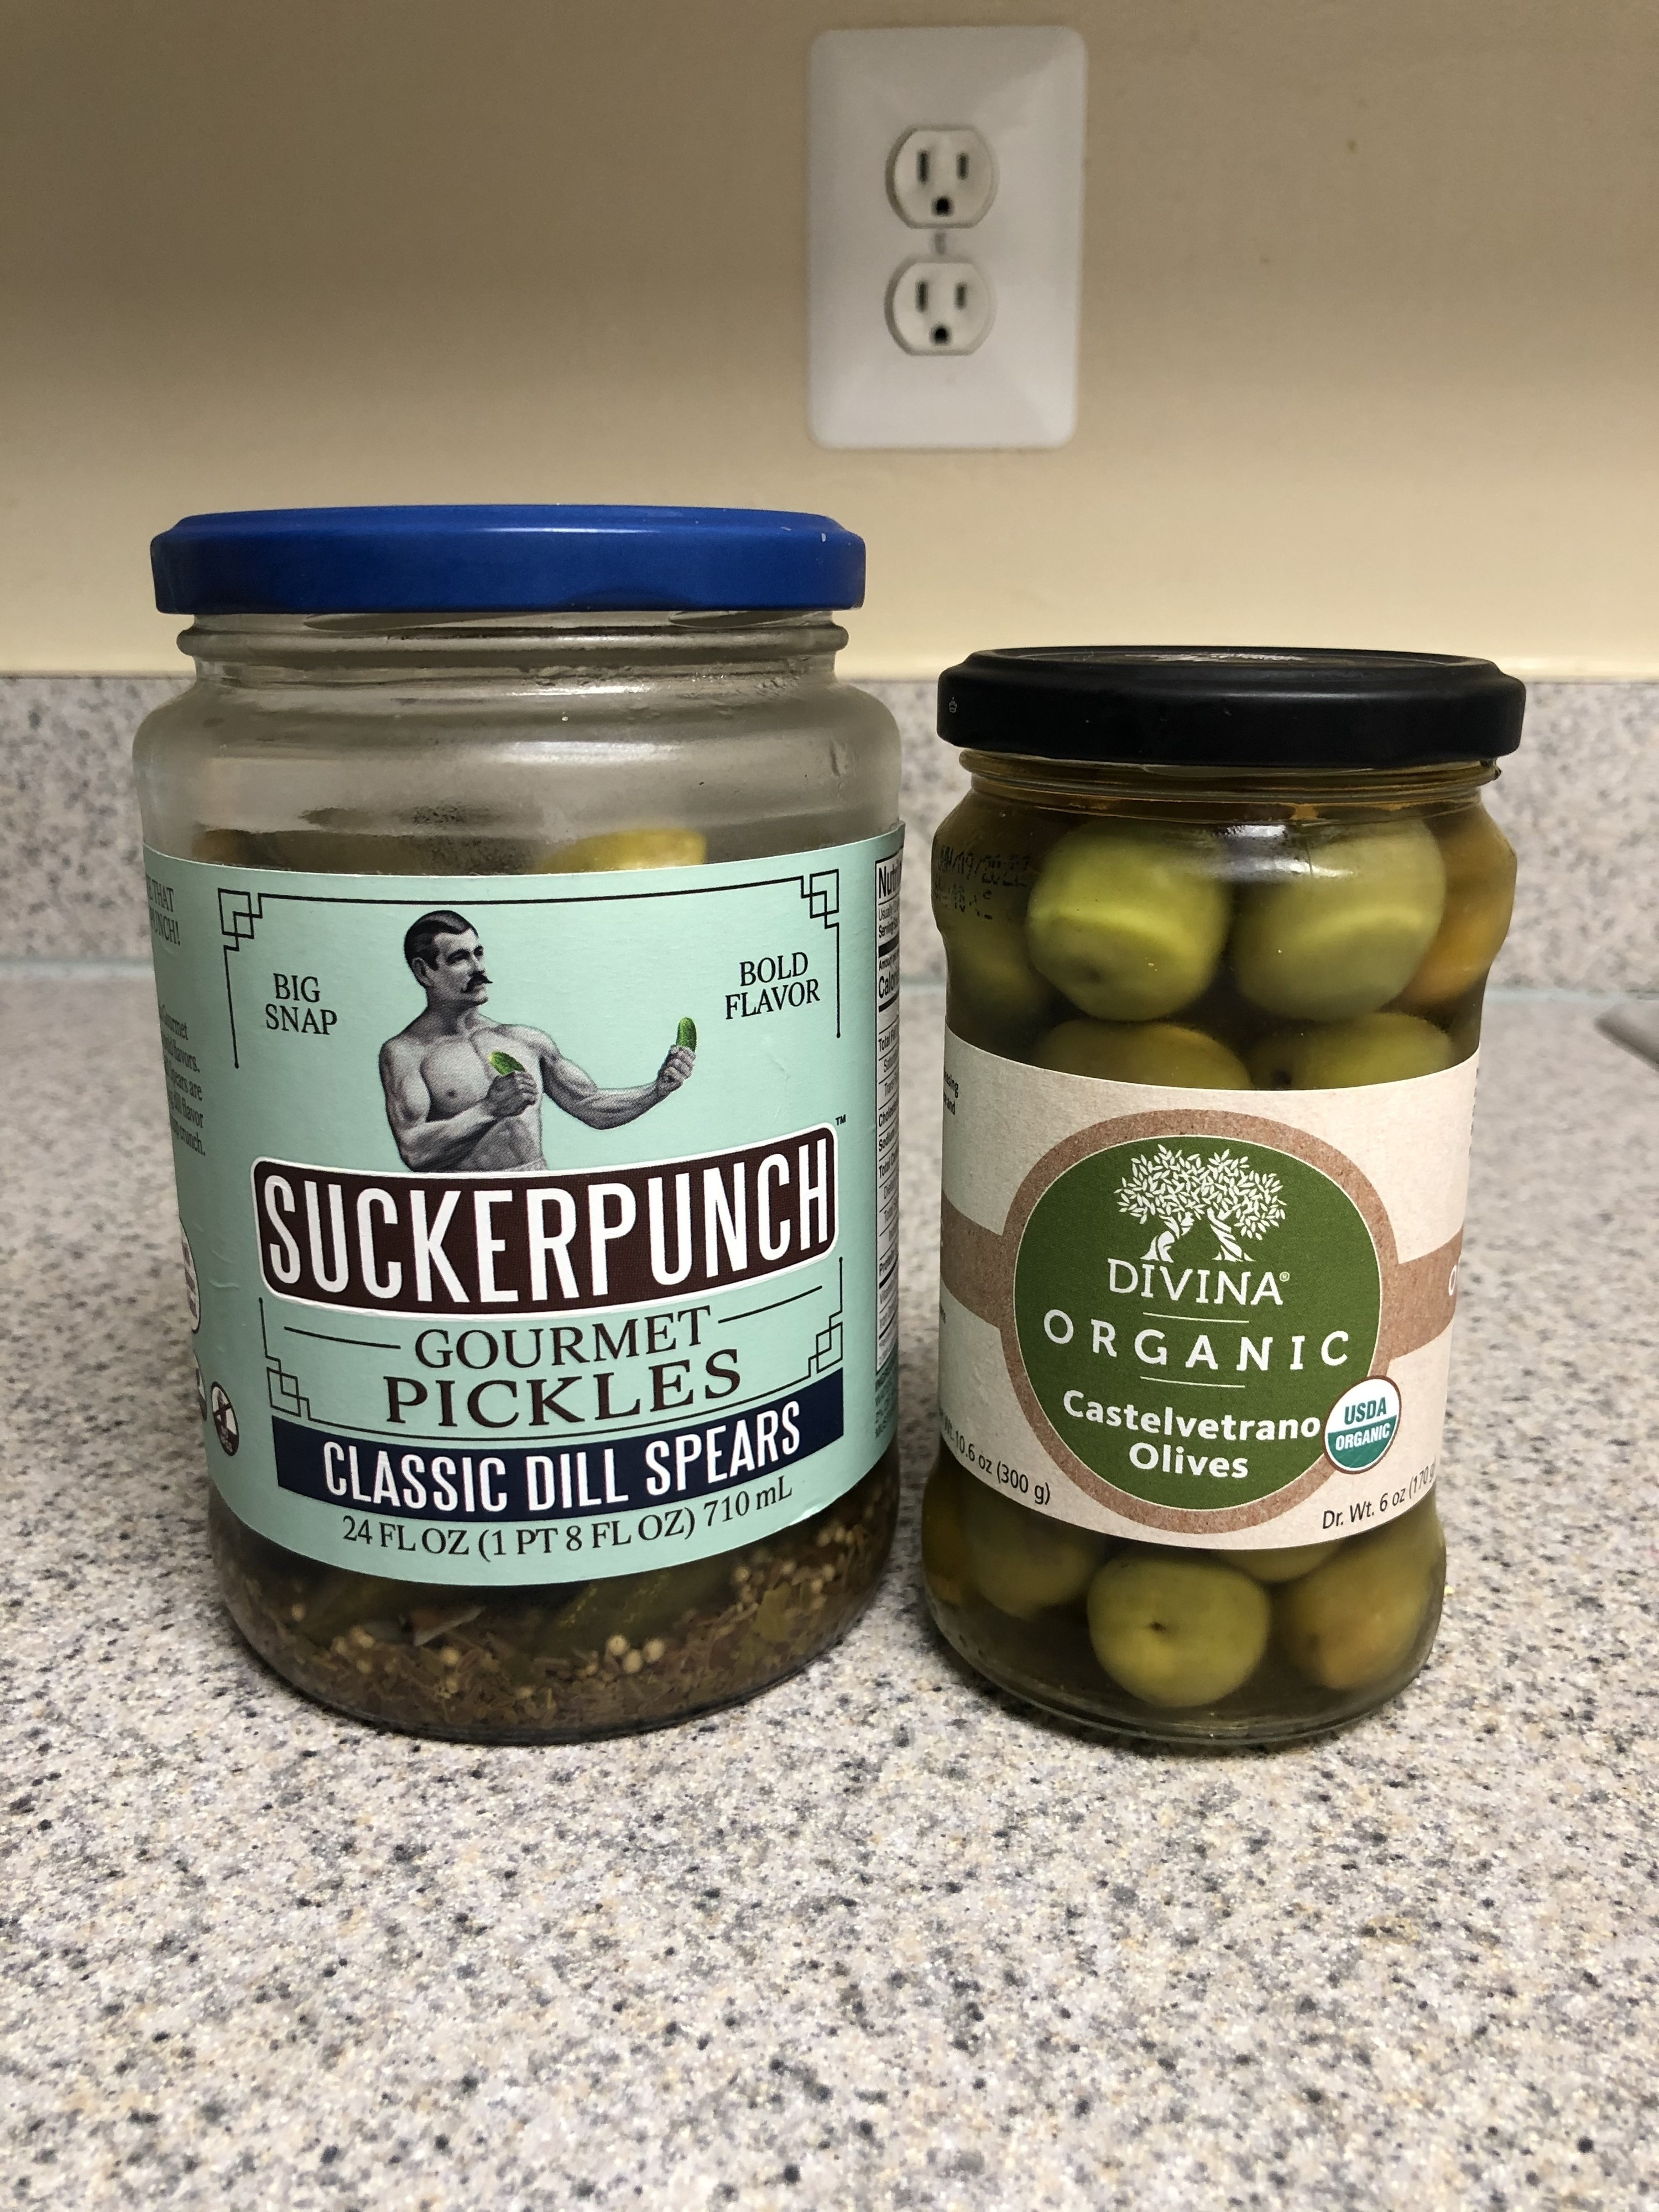 Two jars next to each other: one full of pickles, one full of olives